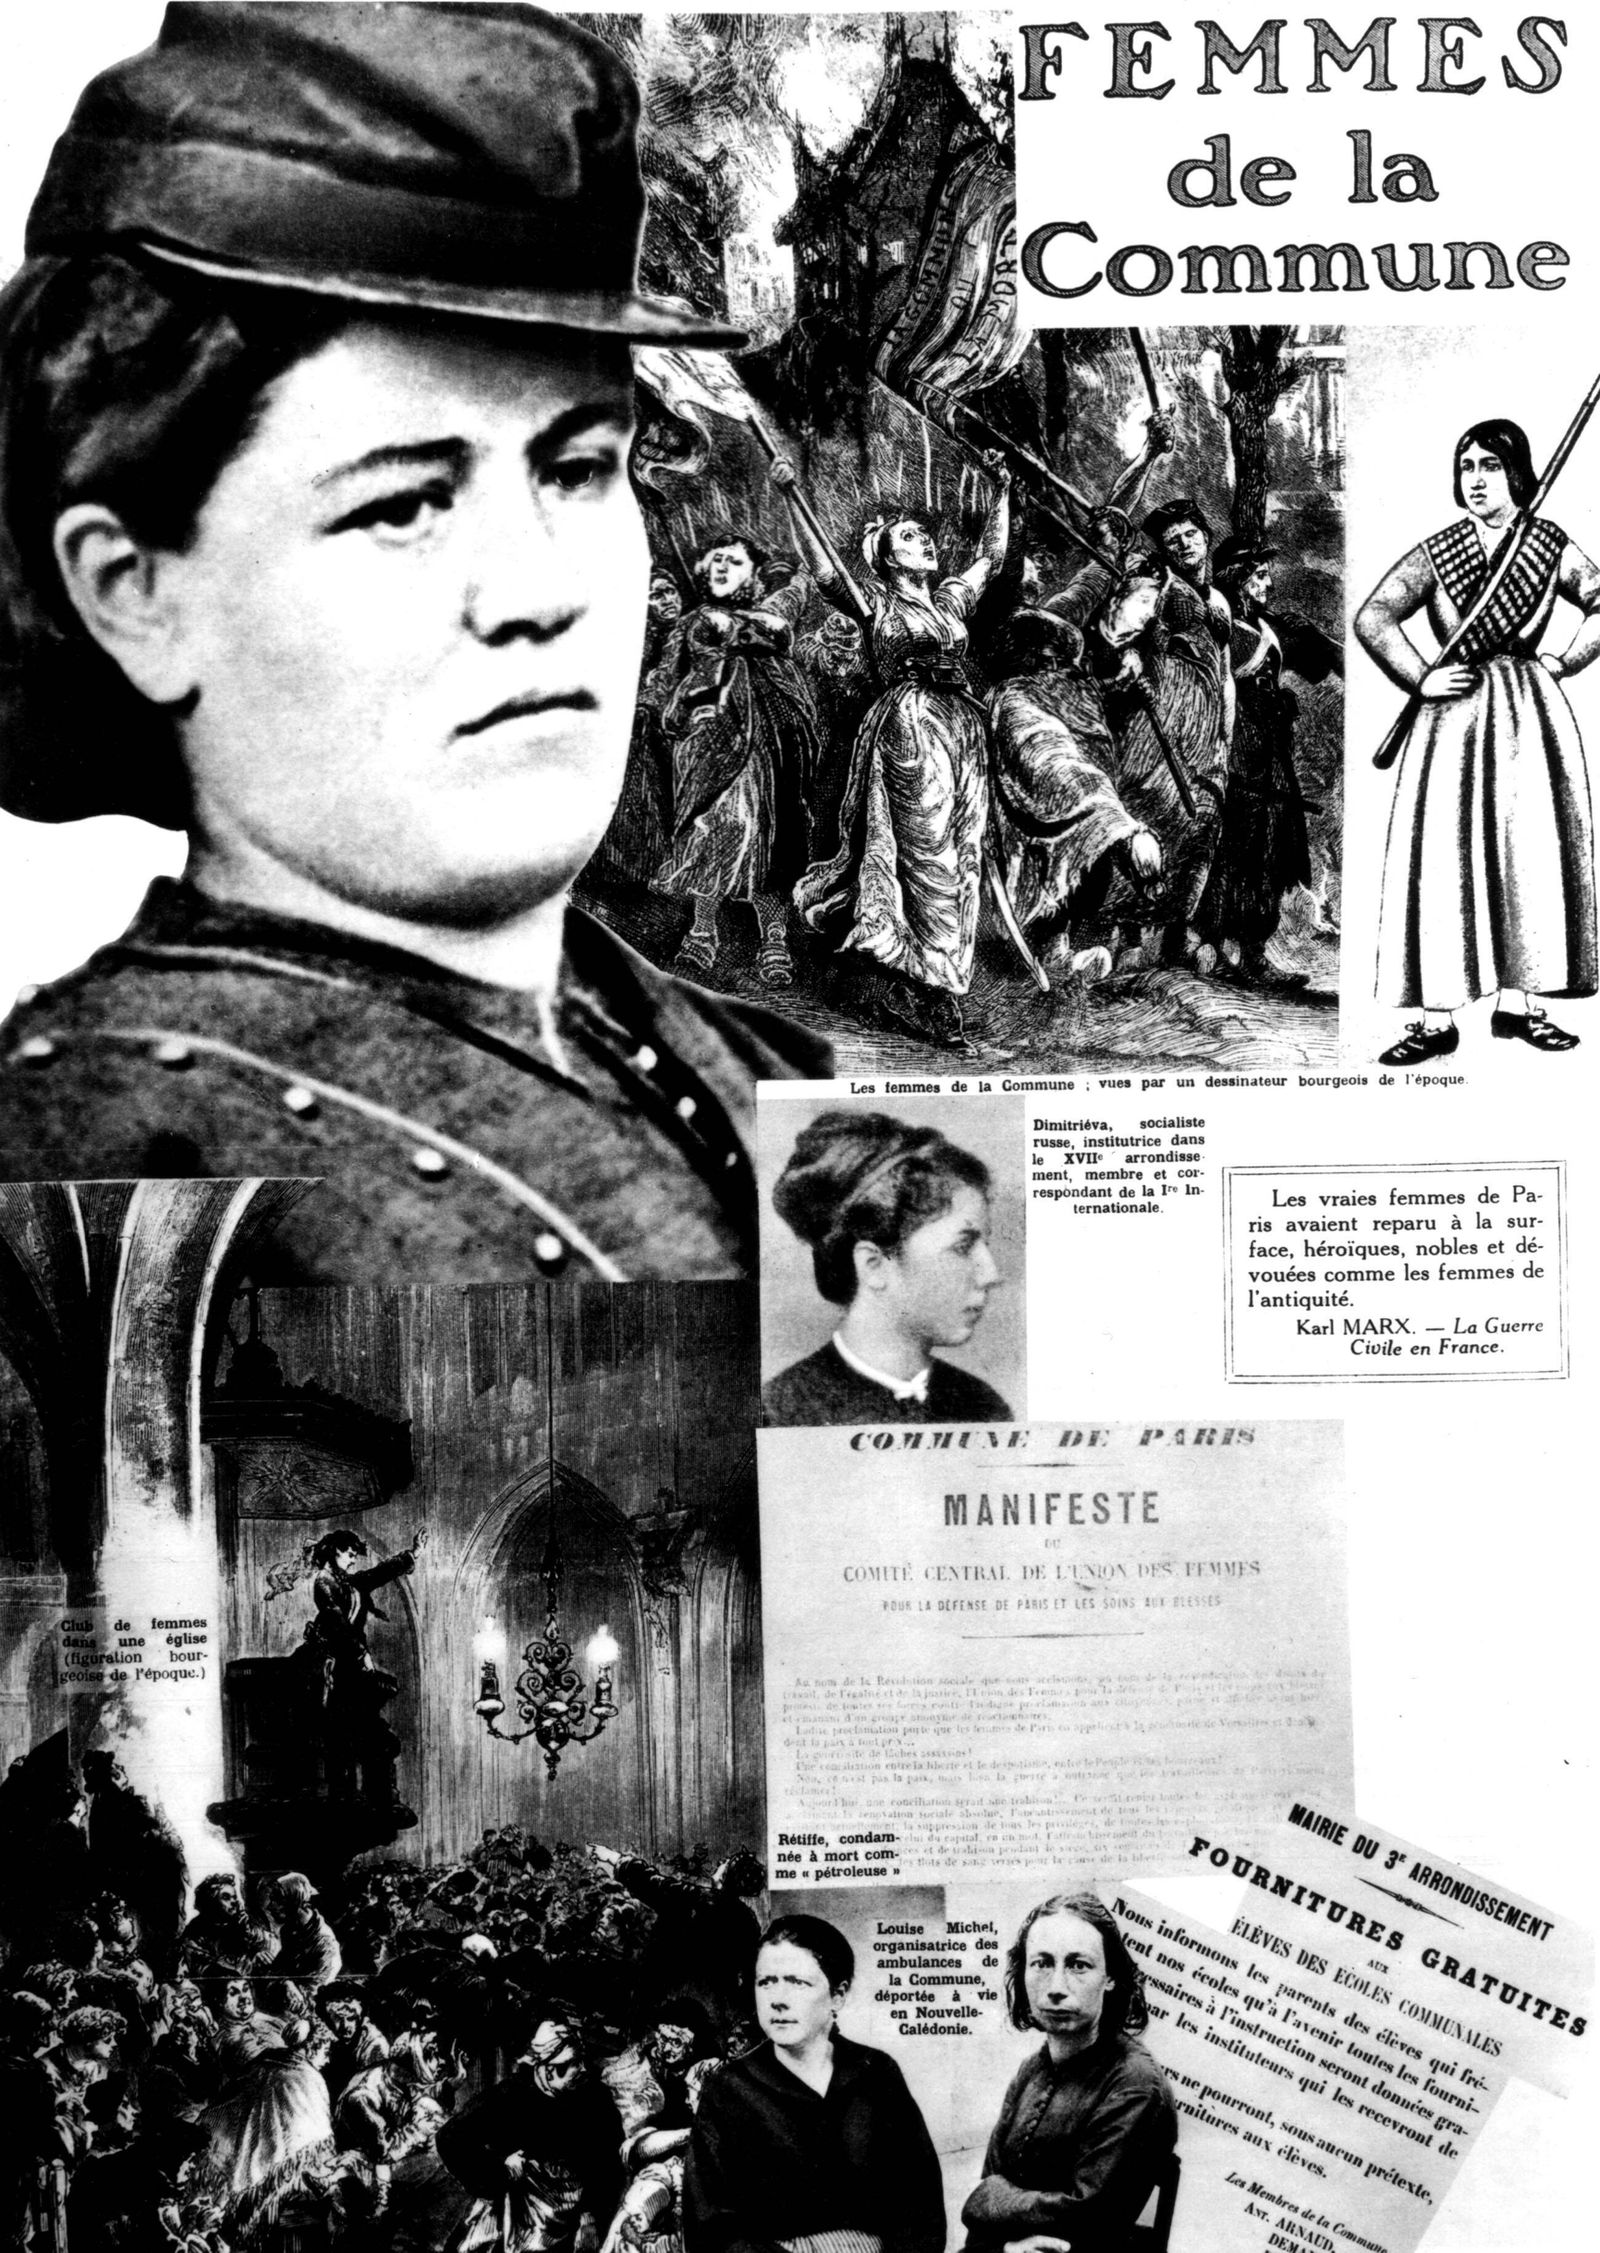 Commune women Photomontage published in the newspaper l Humanité in a special issue about the Par